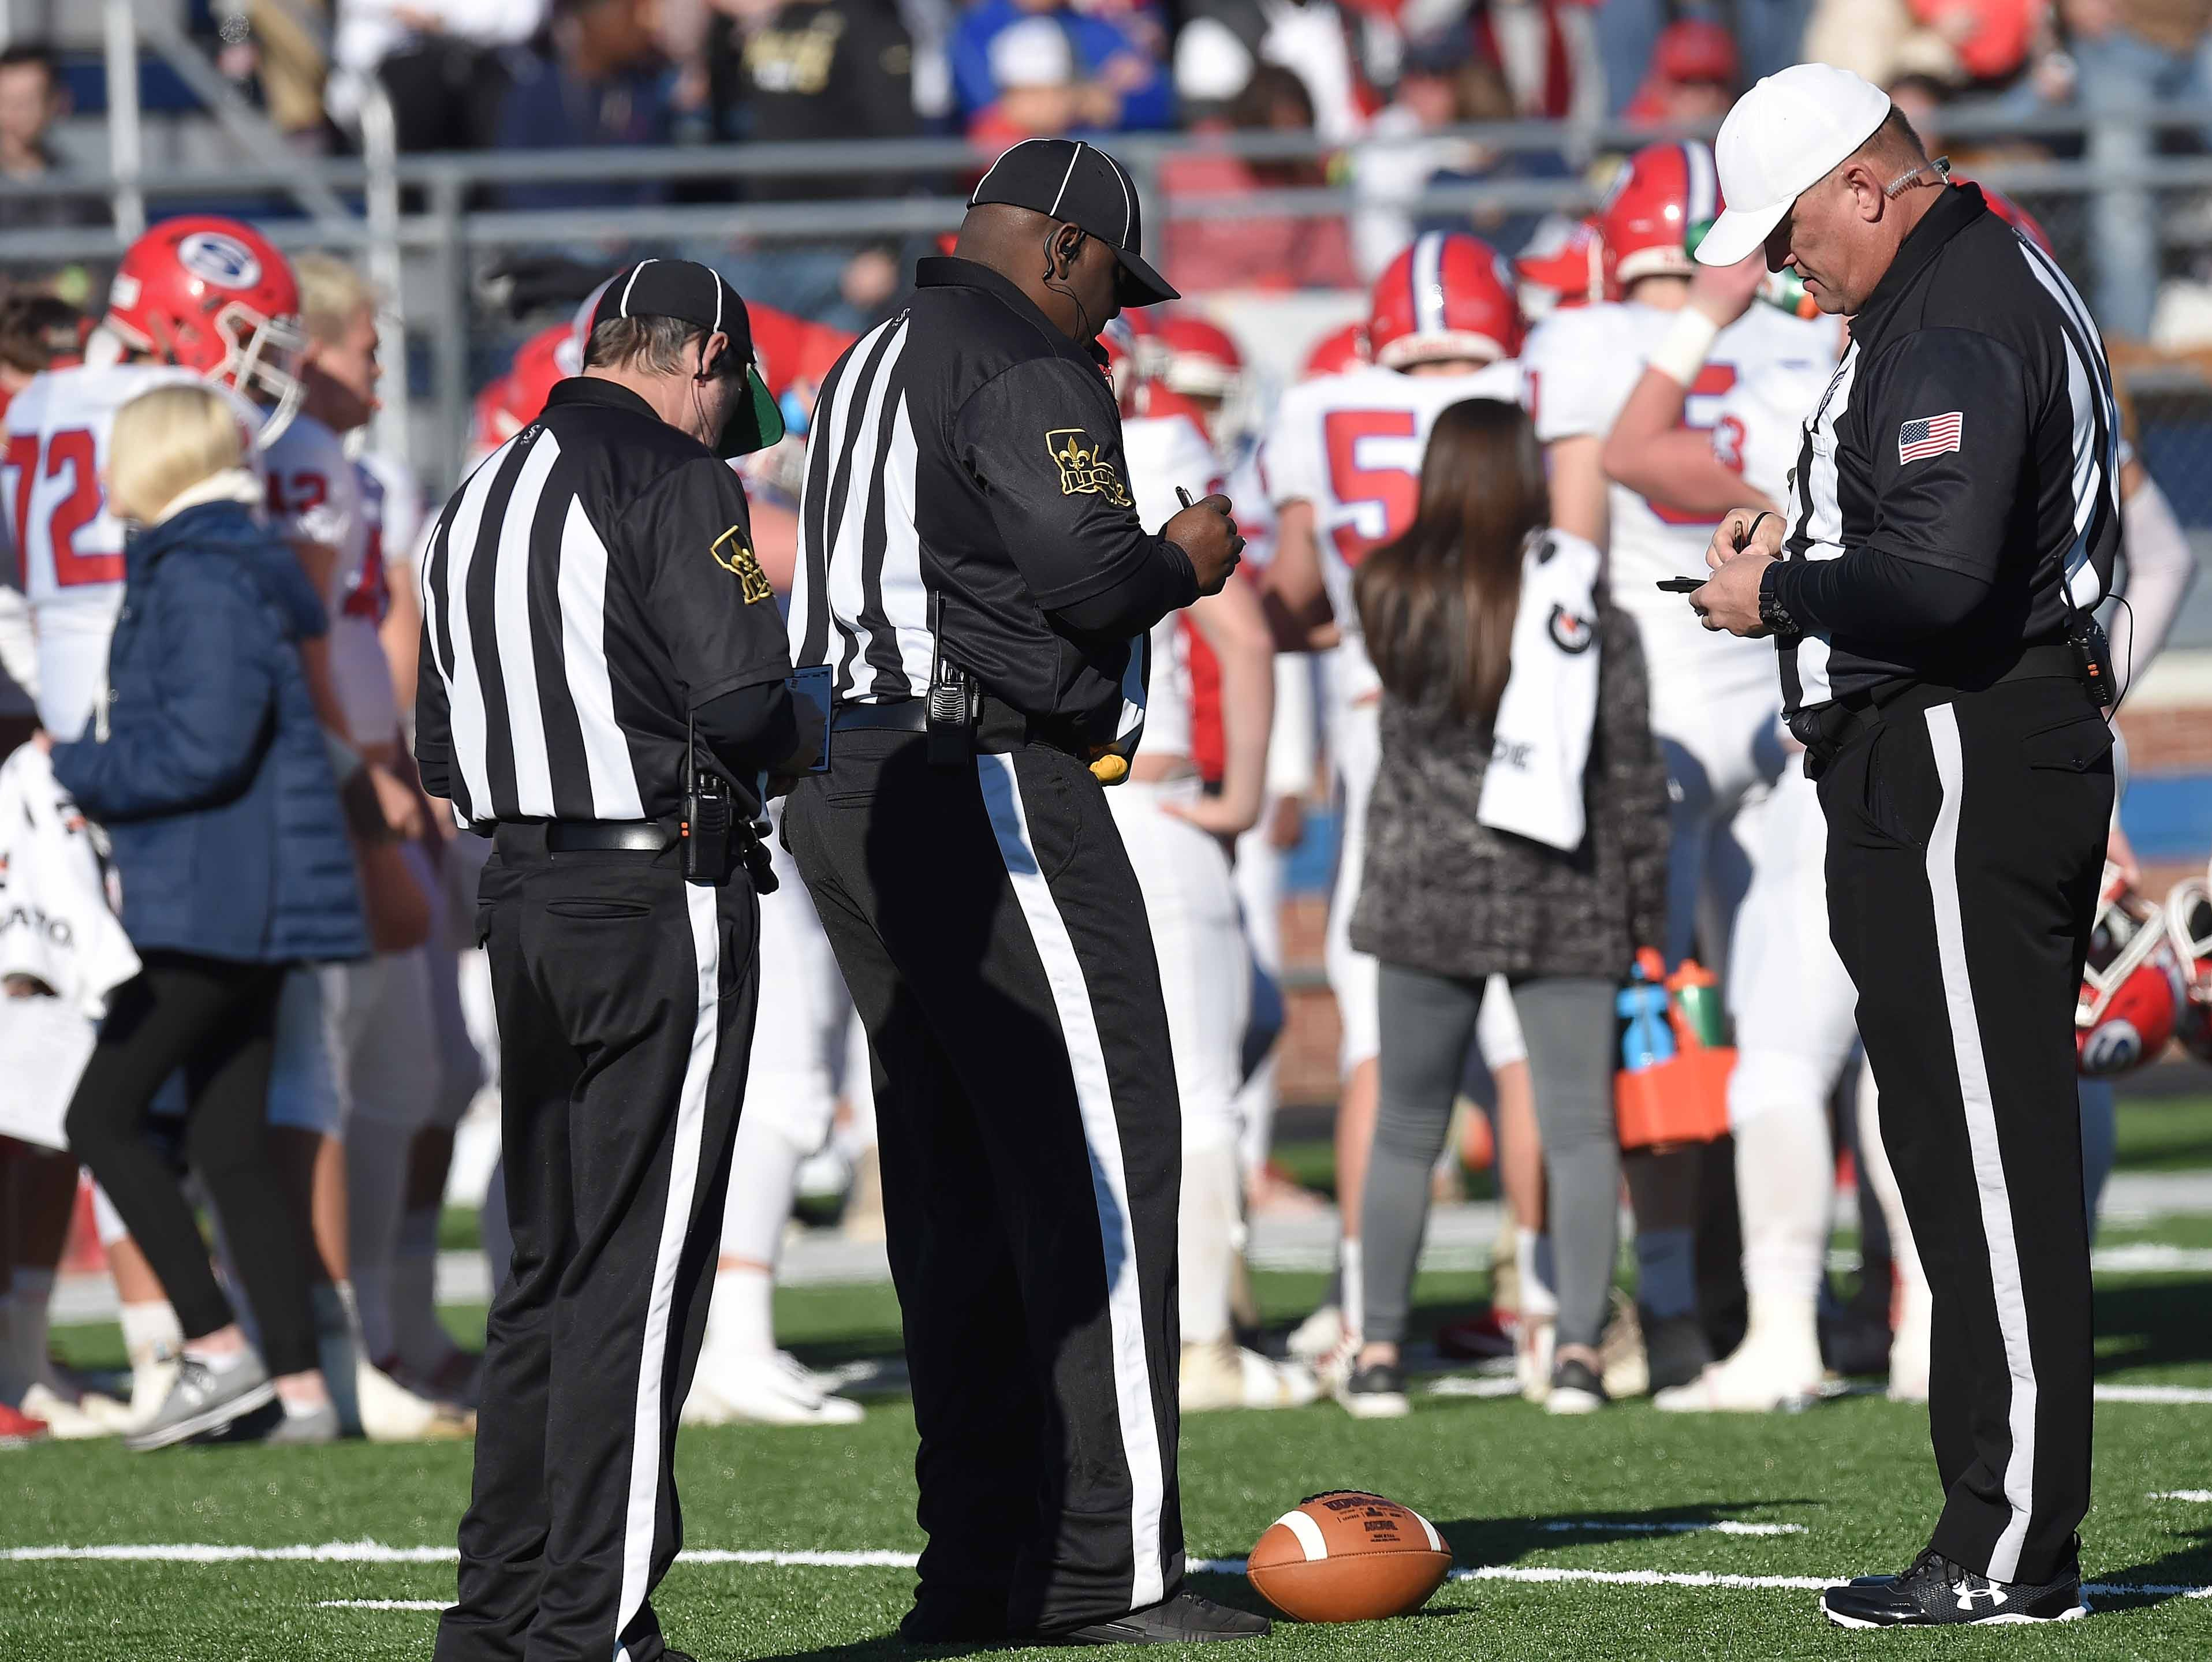 Officials catch up on their notes during a time out on Thursday, November 15, 2018, in the MAIS Class AAAA-D2 Football Championship at Jackson Academy in Jackson, Miss.